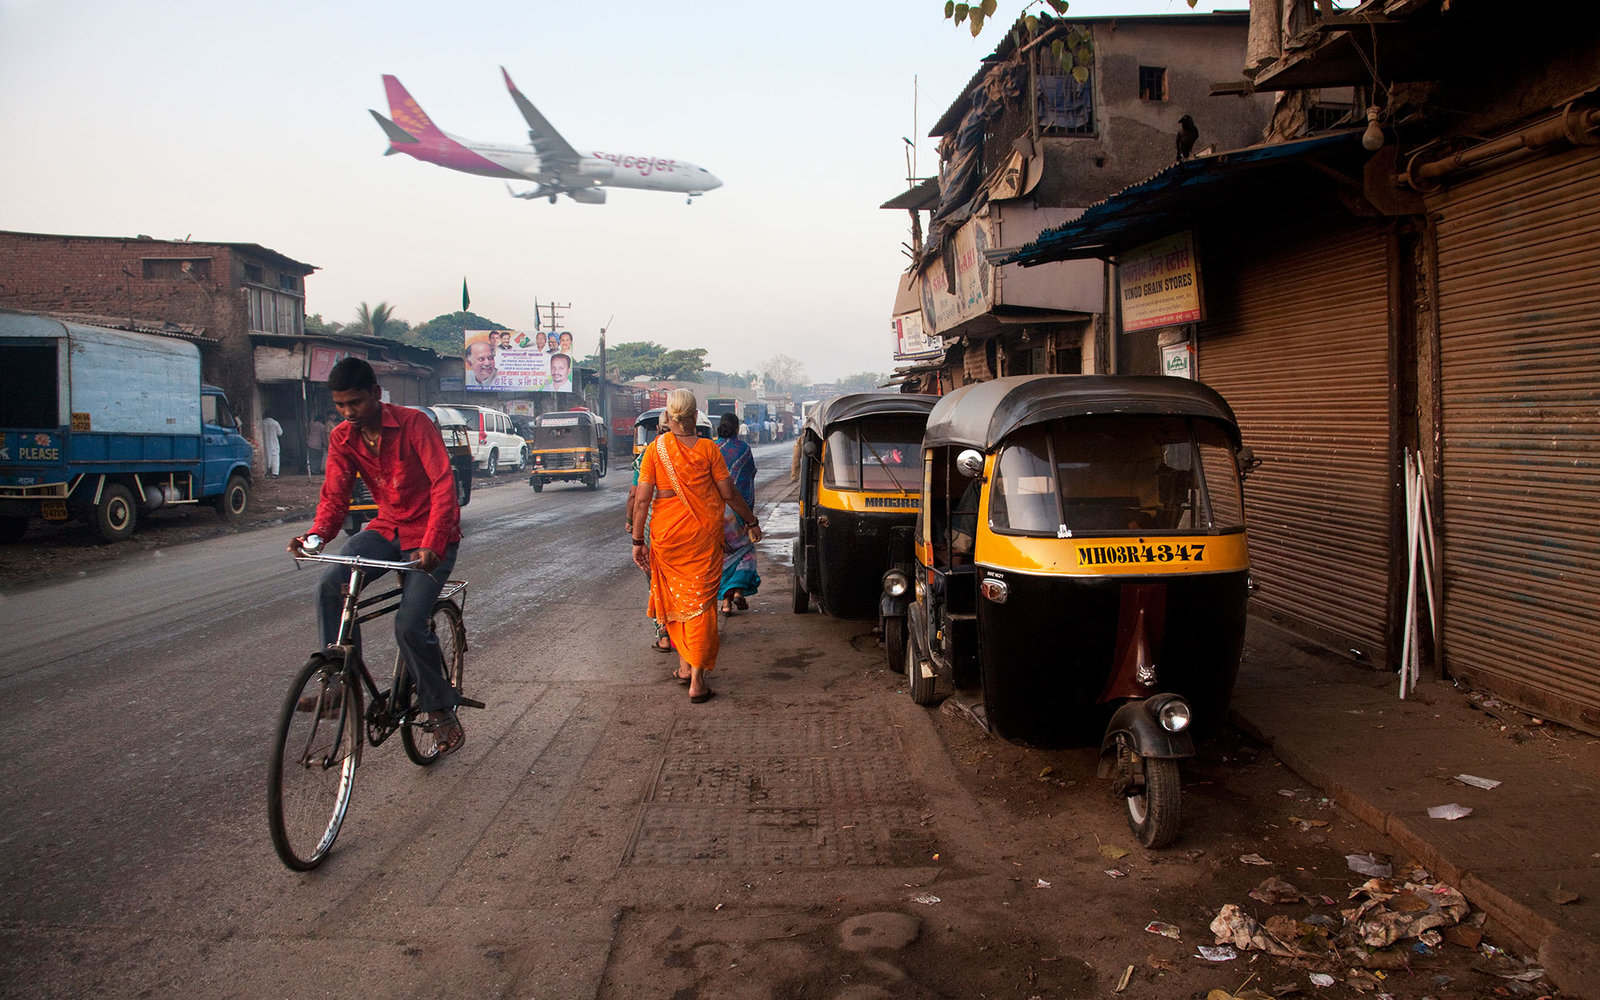 Plane landing at Mumbai International Airport next to slums.